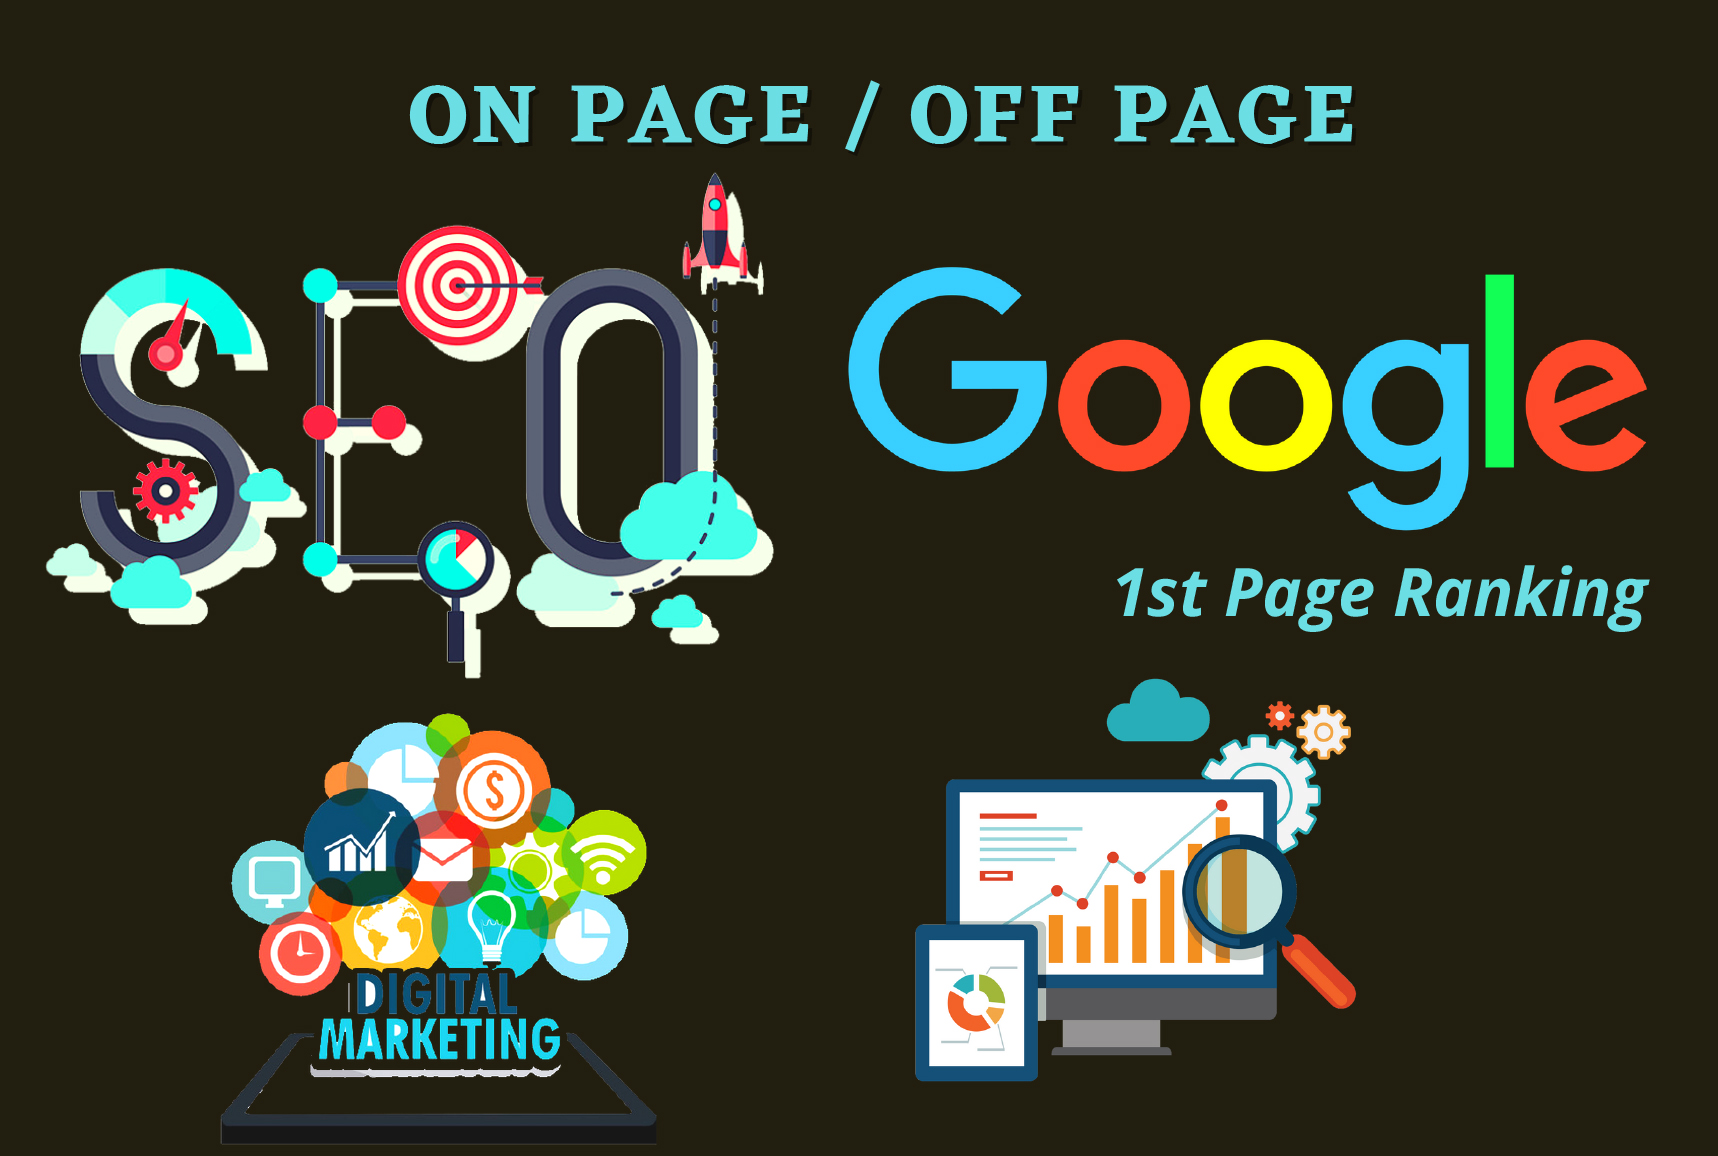 Rank Your Website on Google 1st Page With Powerful White-Hat Method